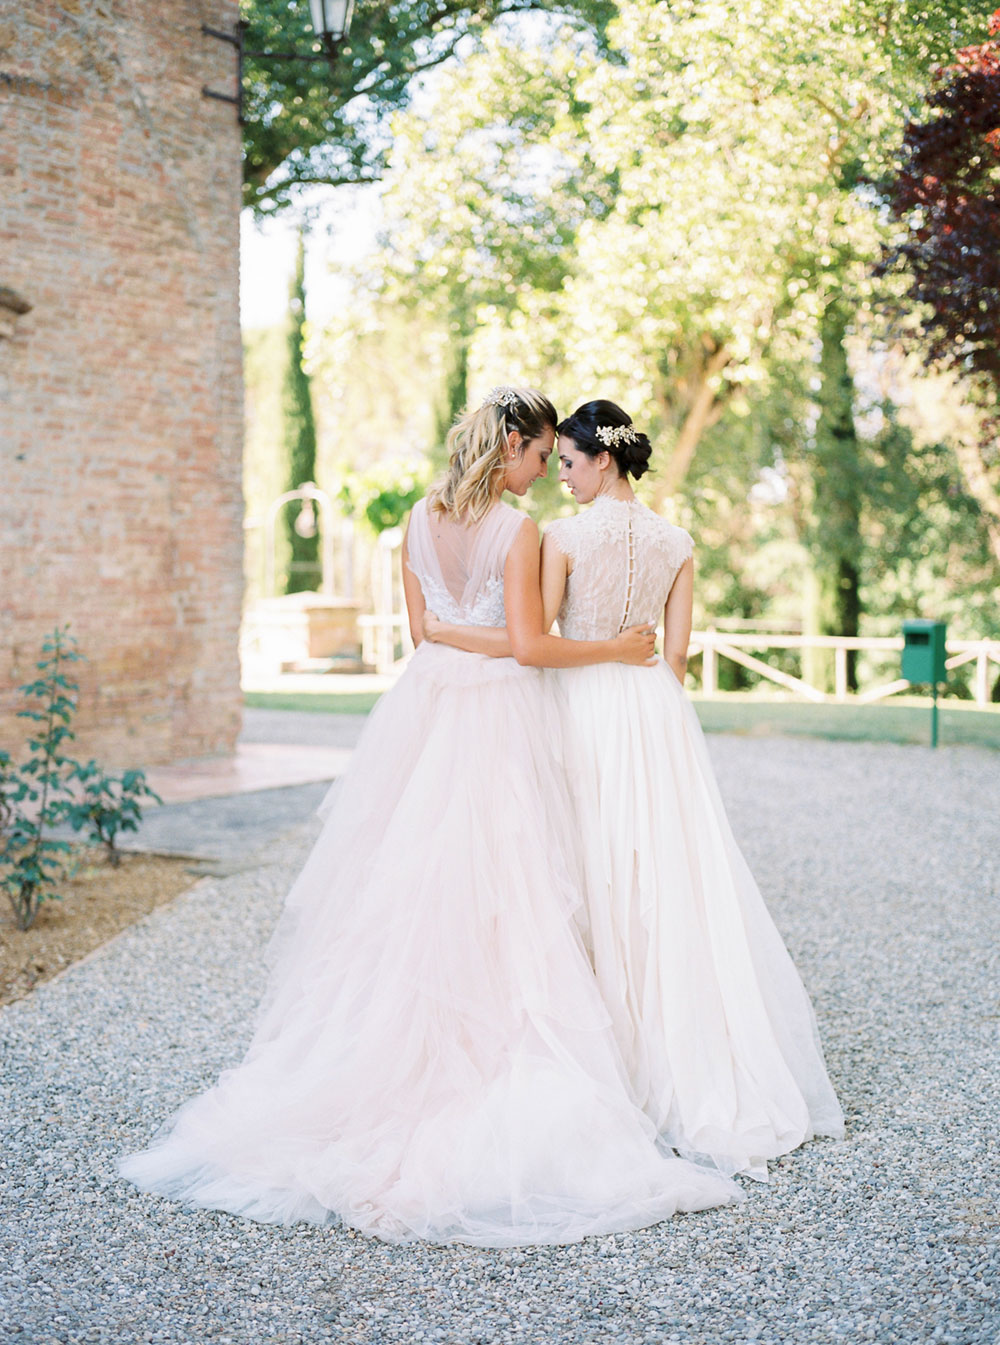 Linari-Tuscany-Elopement-Courtney-Michaela-240